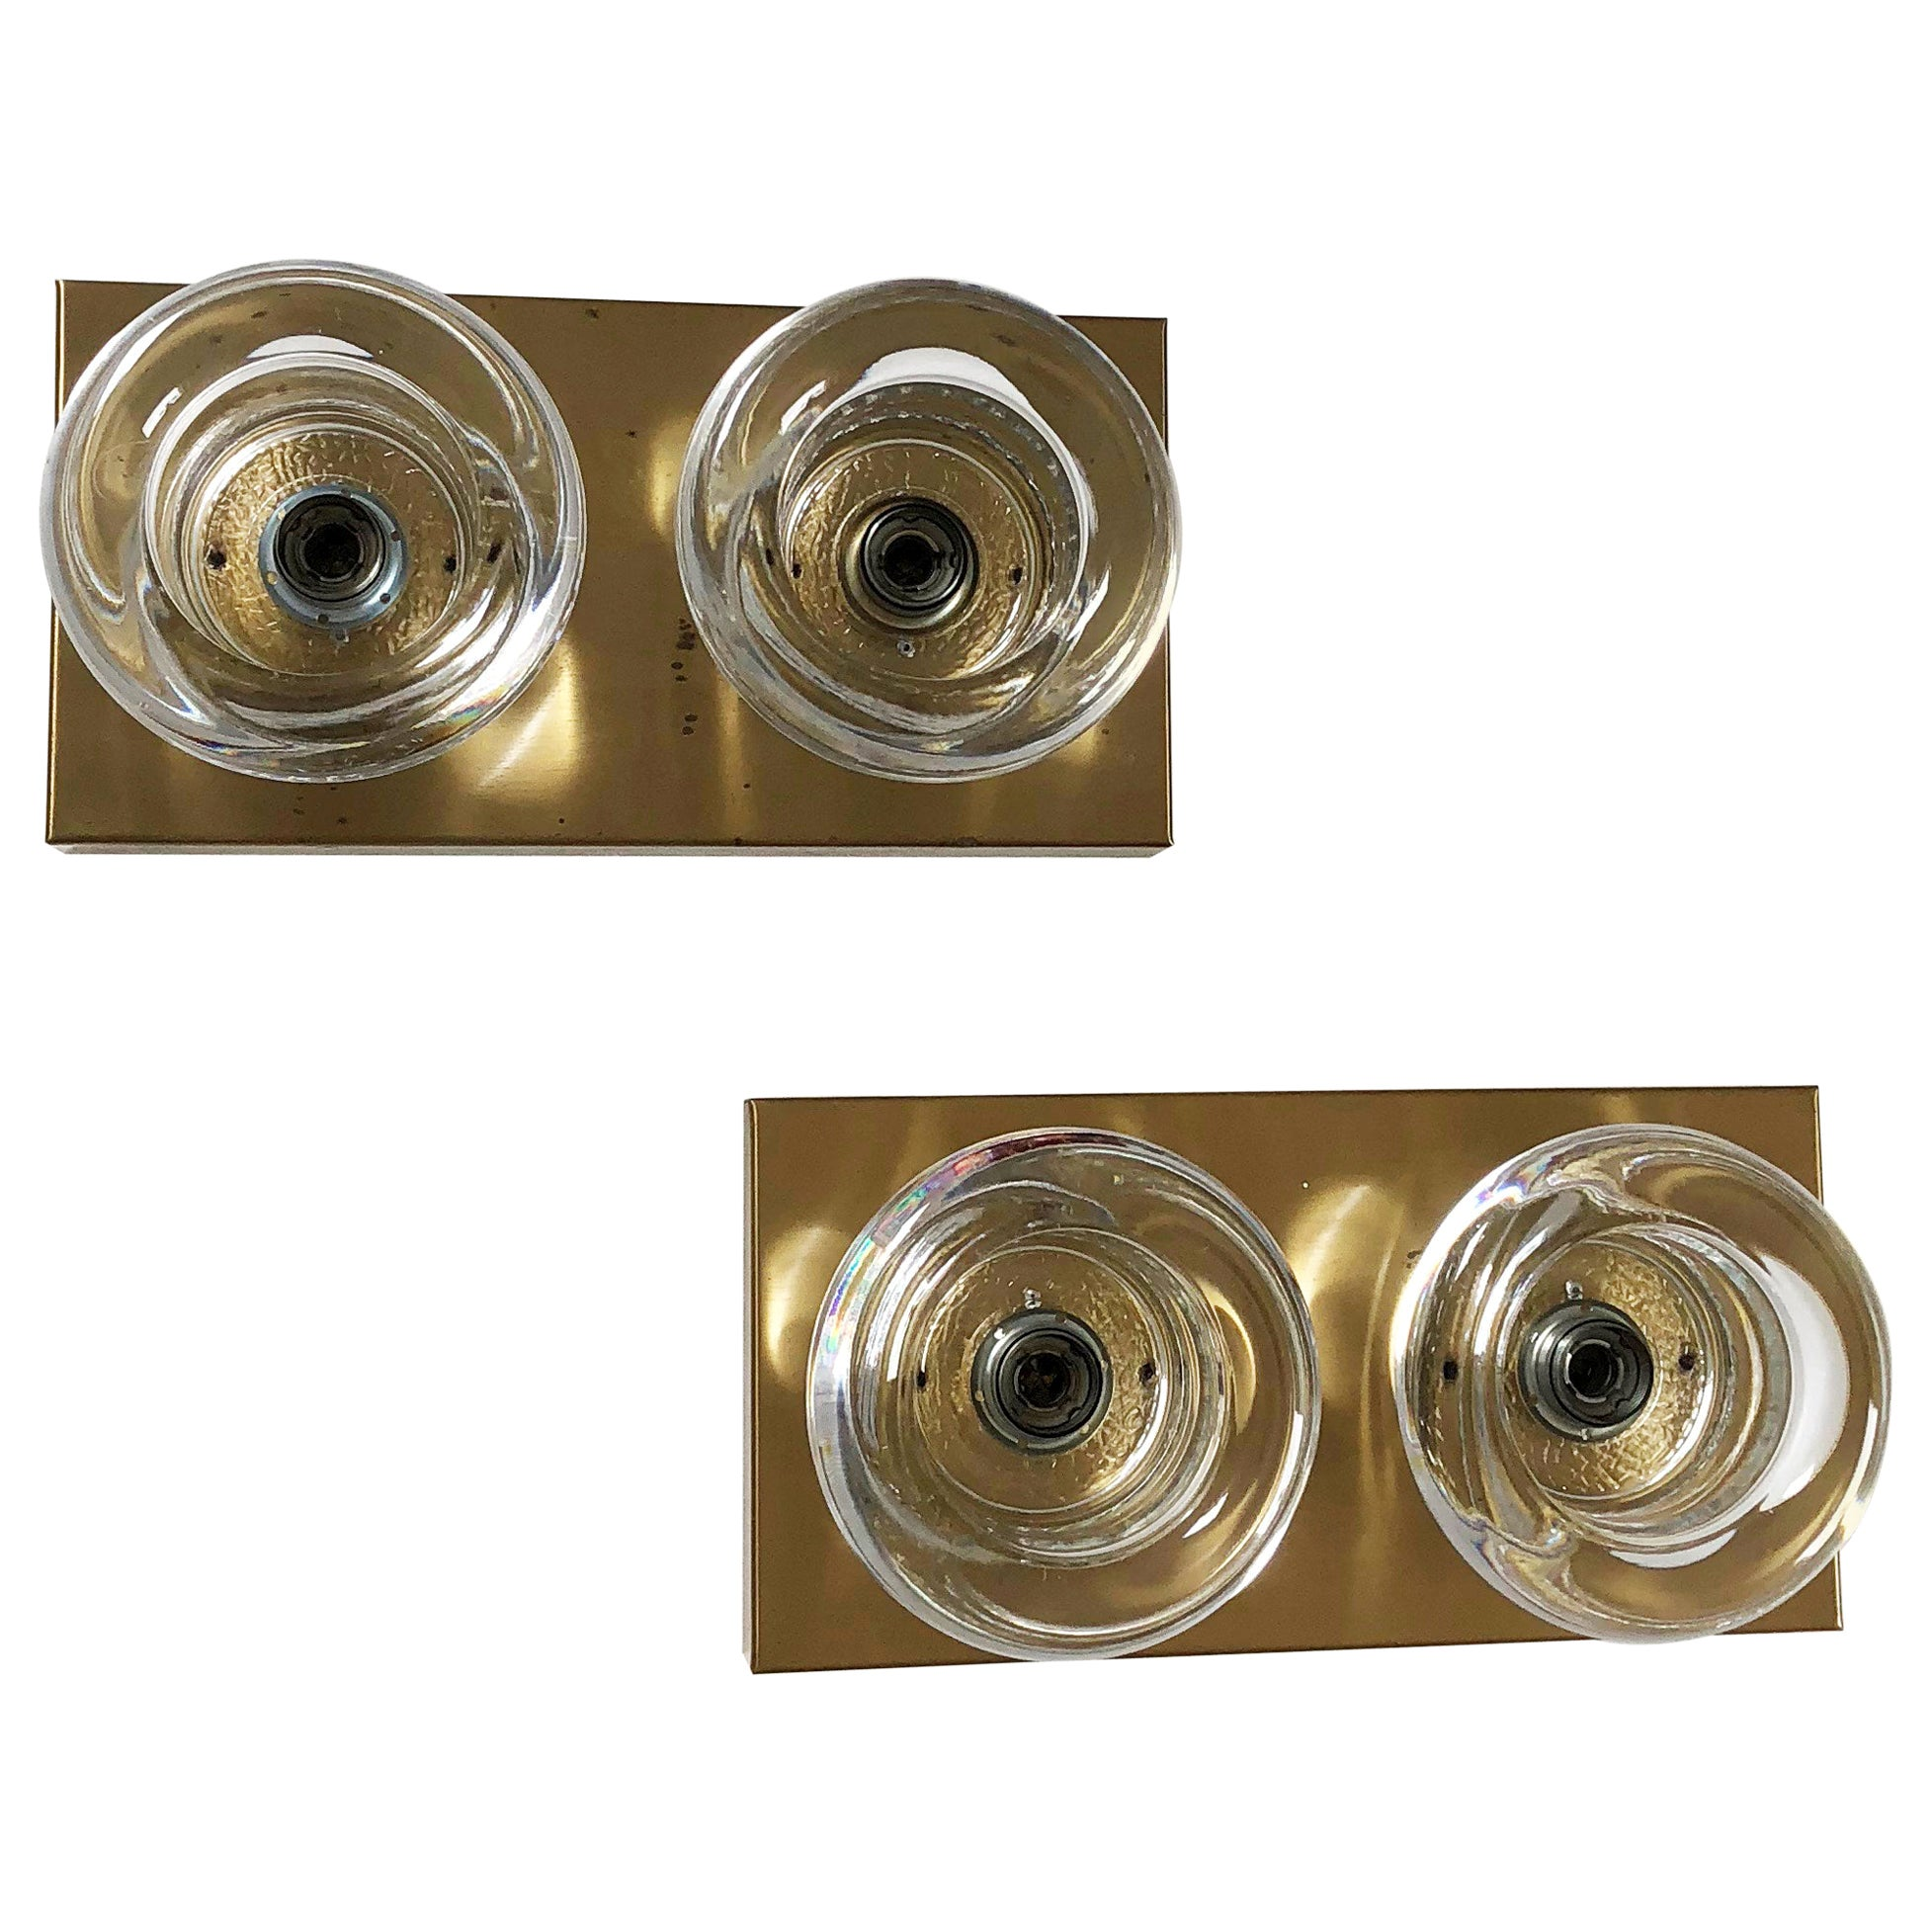 Set of 2 Original Brass Glass Wall Sconce Space Age Cosack Lights, Germany 1970s